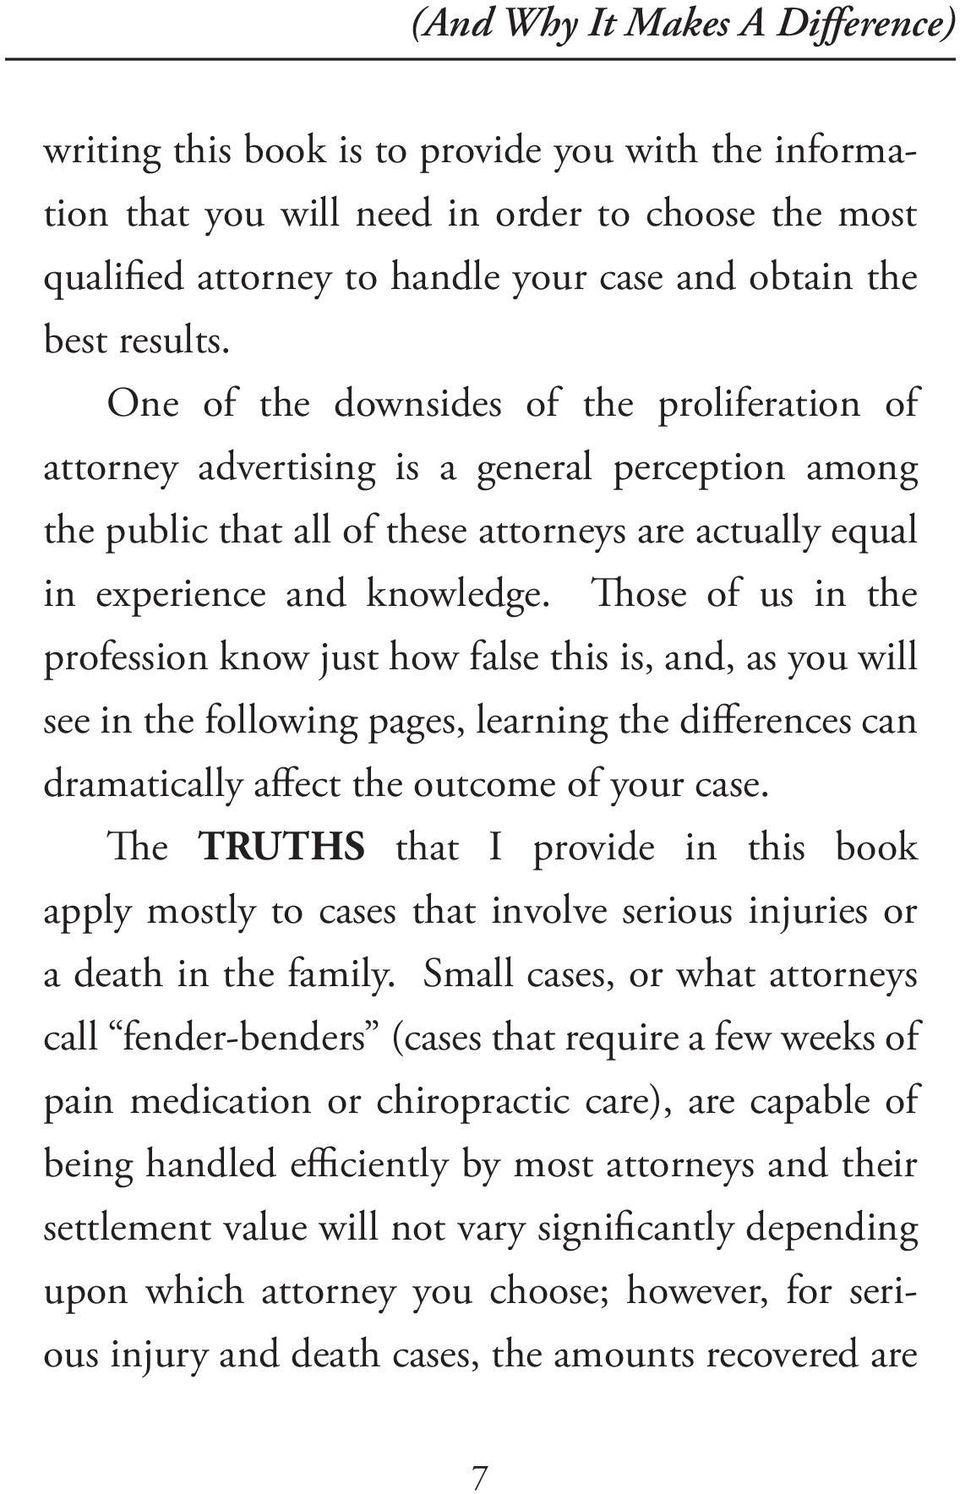 Those of us in the profession know just how false this is, and, as you will see in the following pages, learning the differences can dramatically affect the outcome of your case.